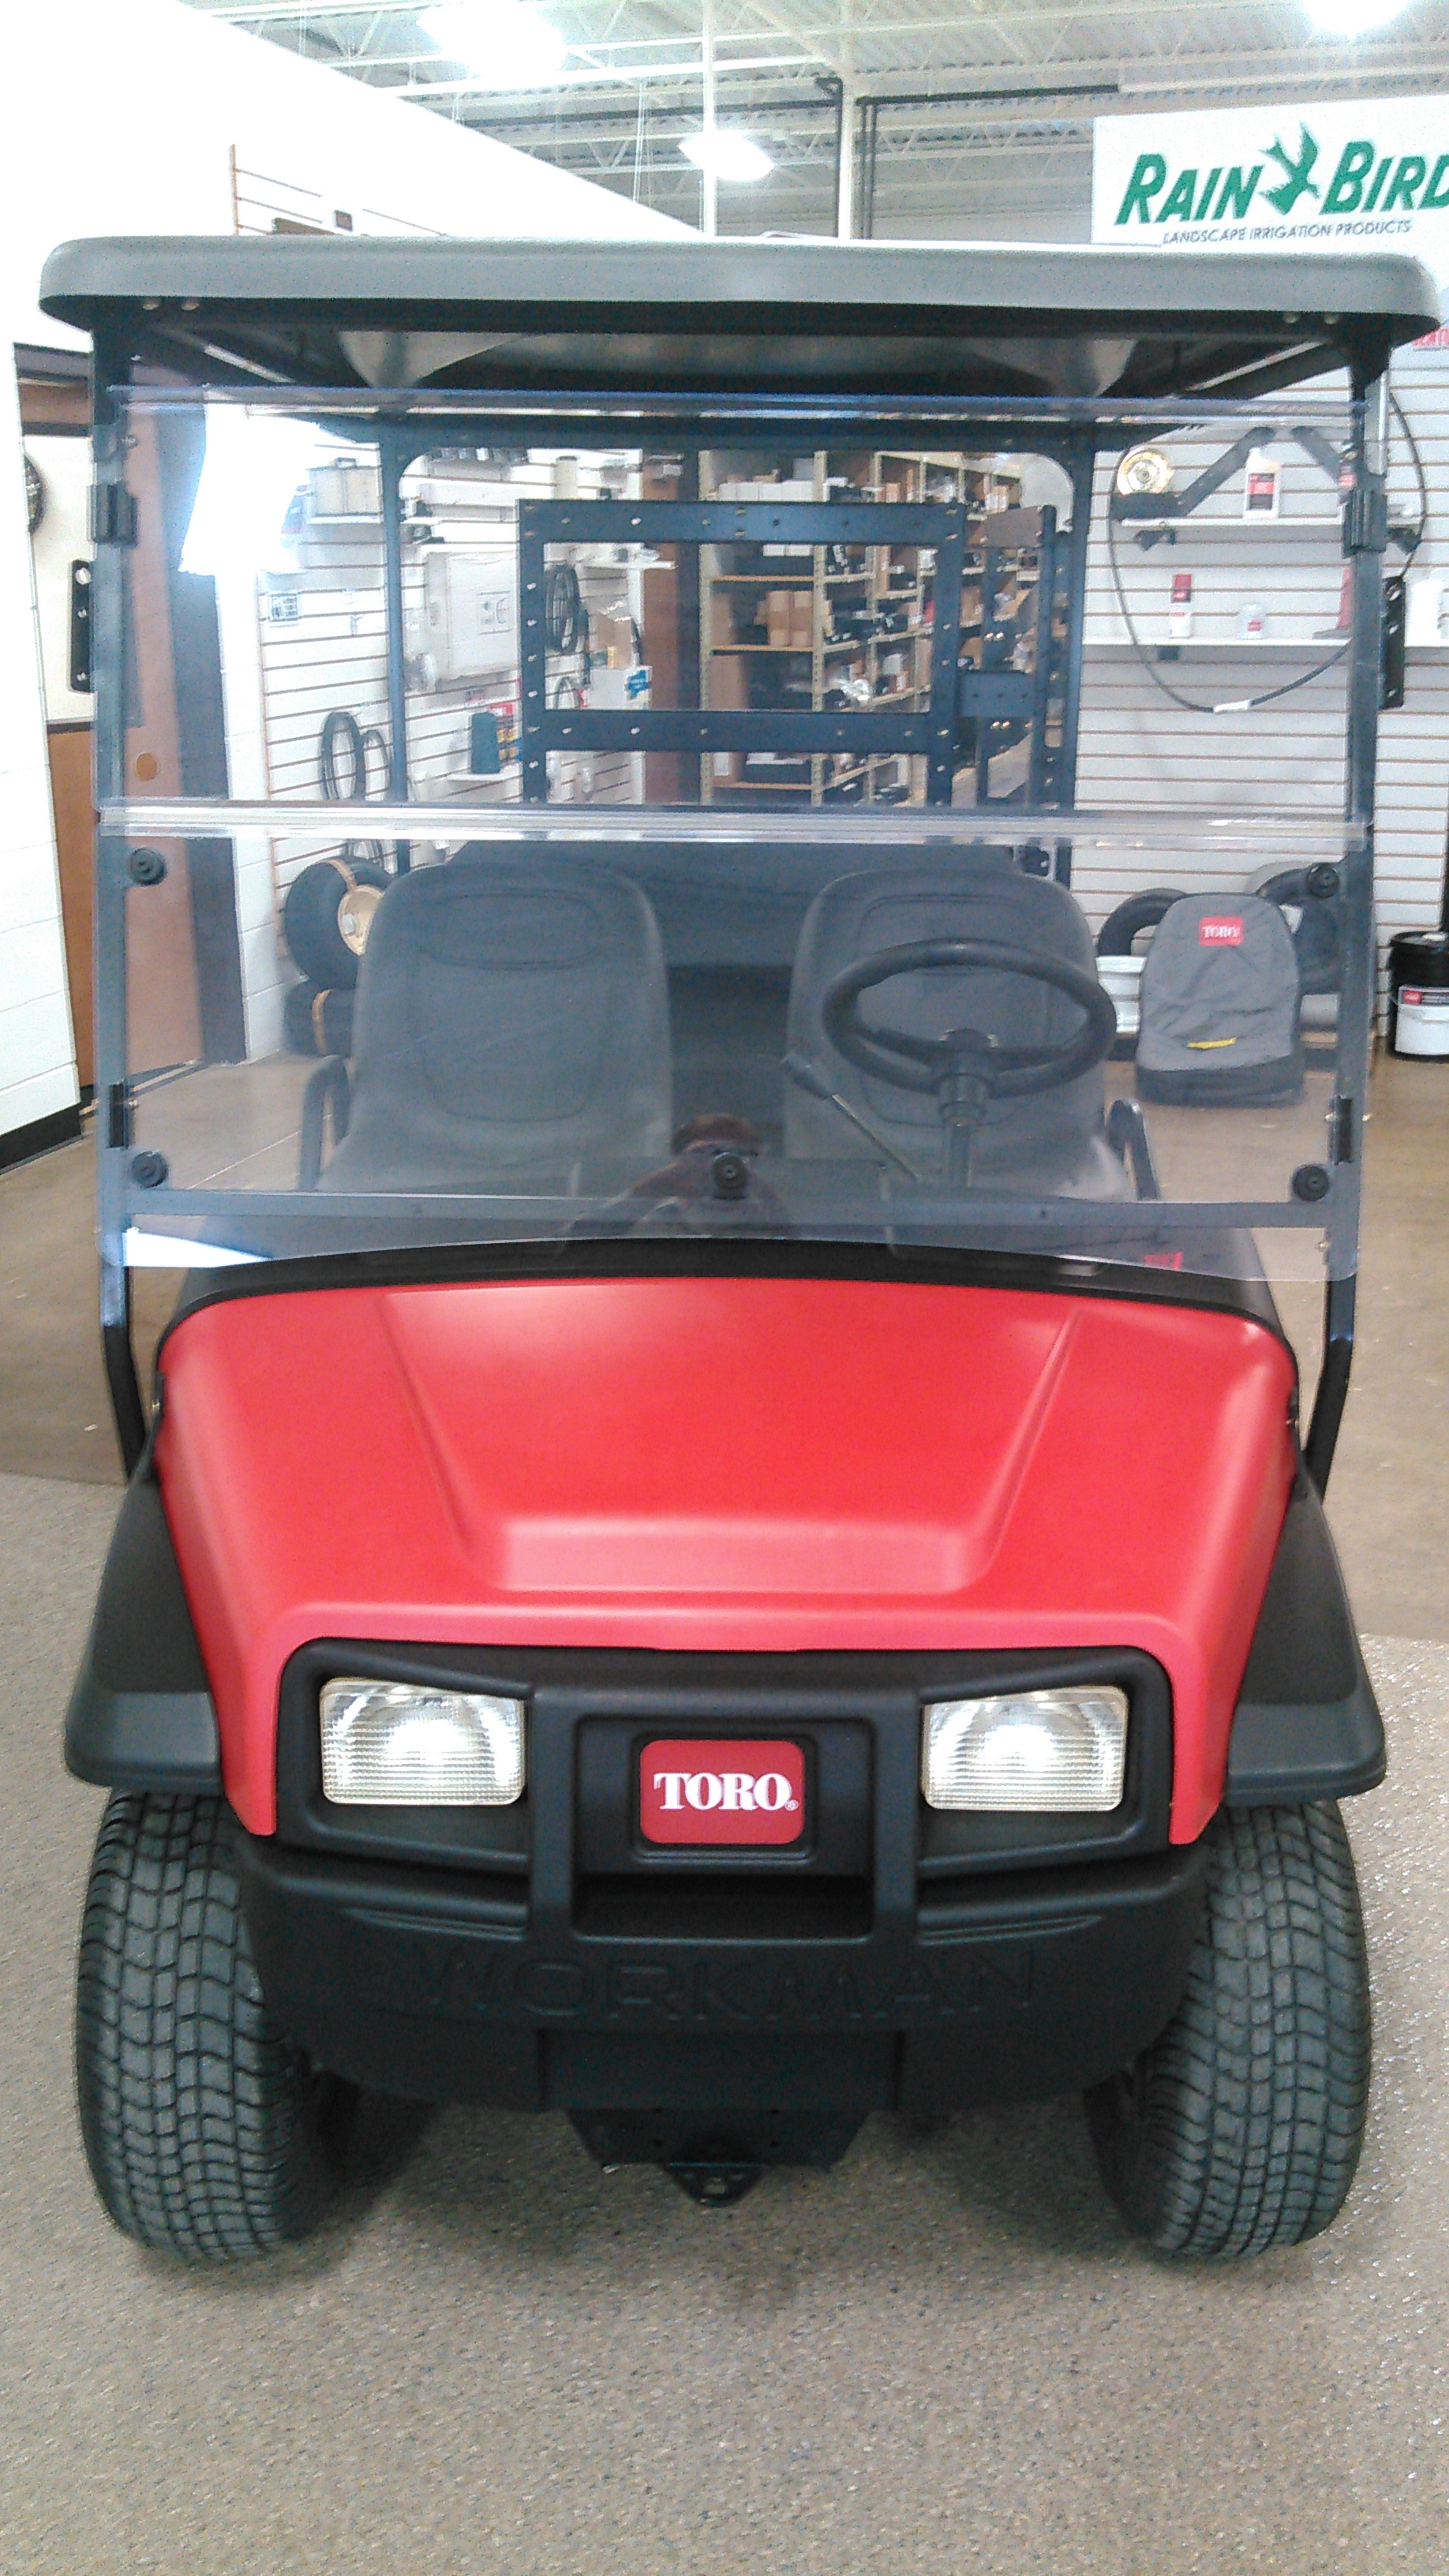 Featured Image for 39. Toro Workman GTX